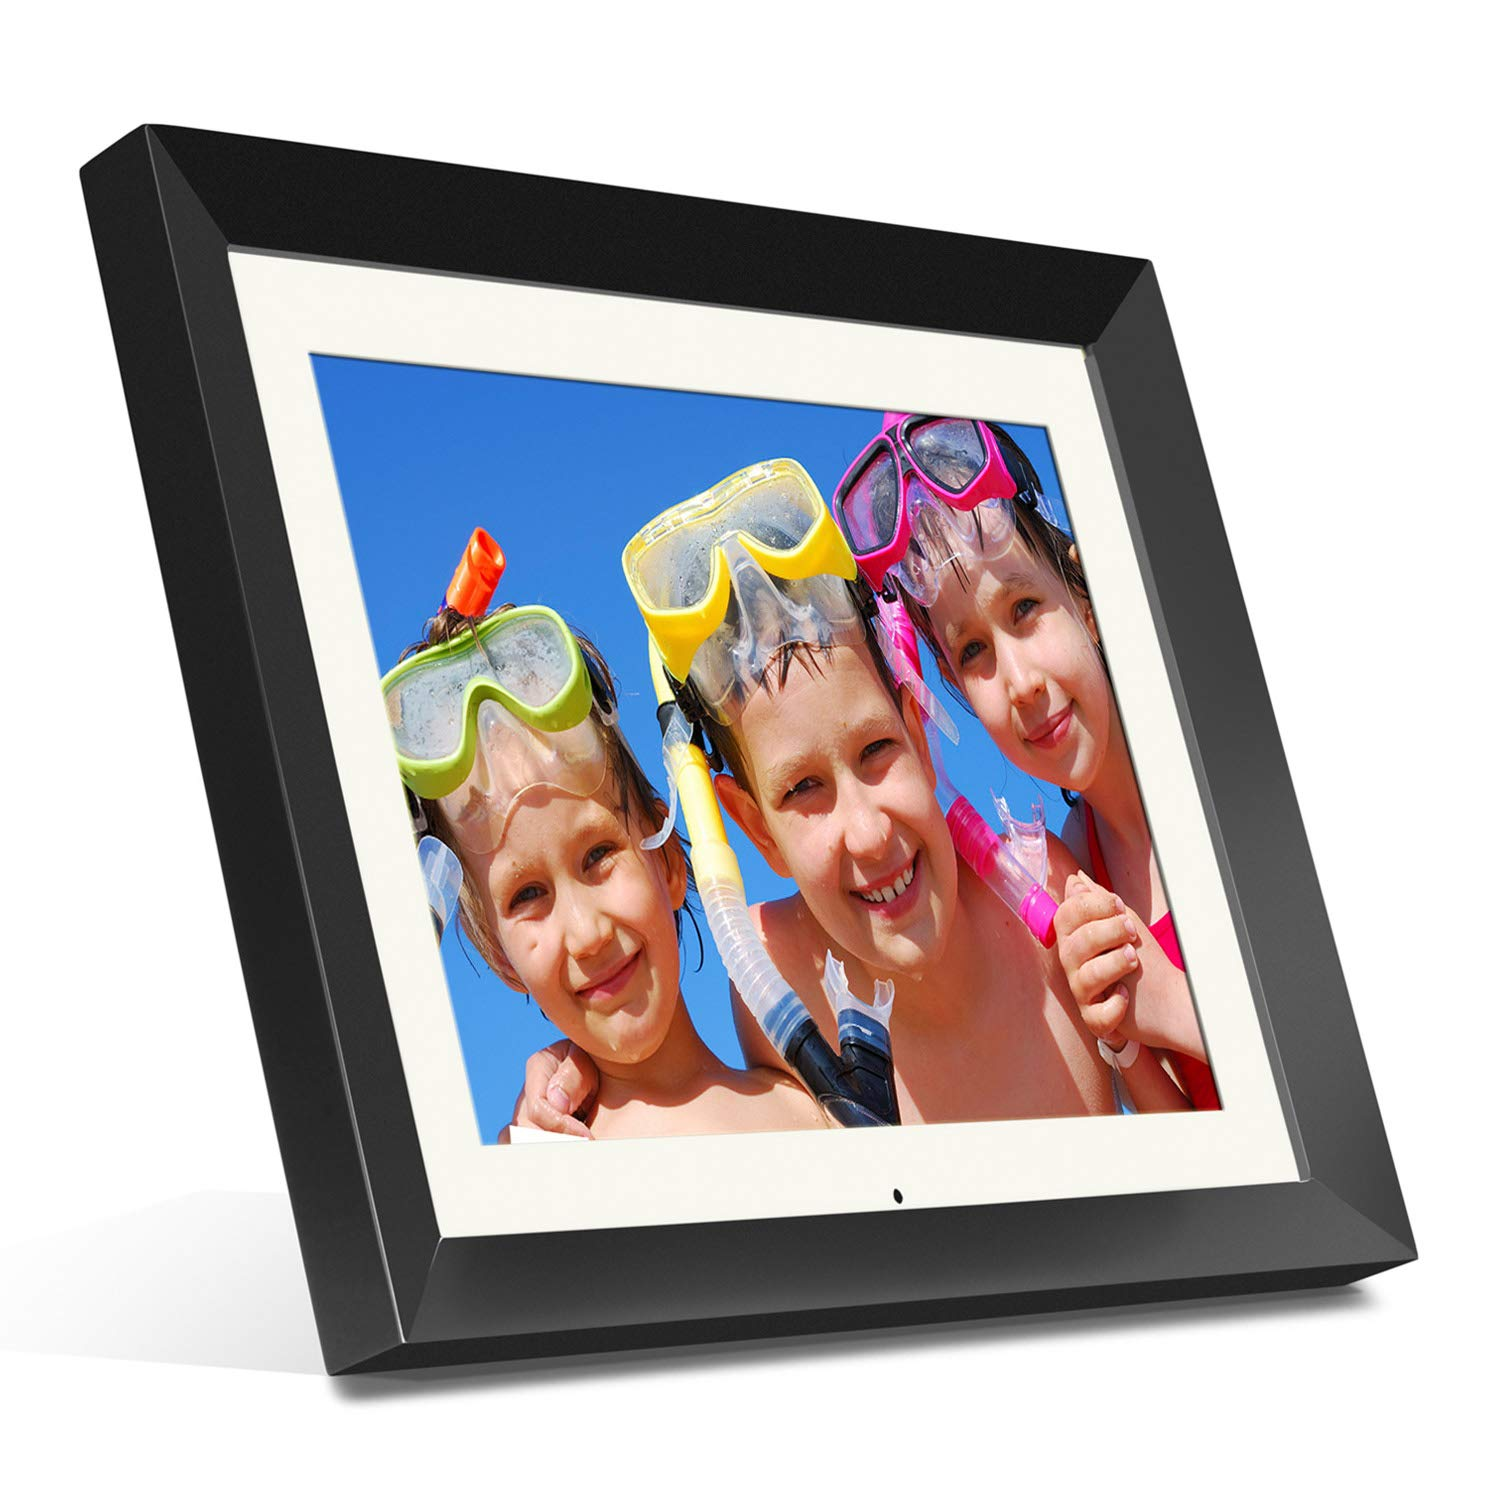 Aluratek (ADMPF415F) 15'' Hi-Res Digital Photo Frame with 2 GB Built-In Memory and Remote (1024 x 768 Resolution) White Matting, Photo/Music/Video Support by Aluratek